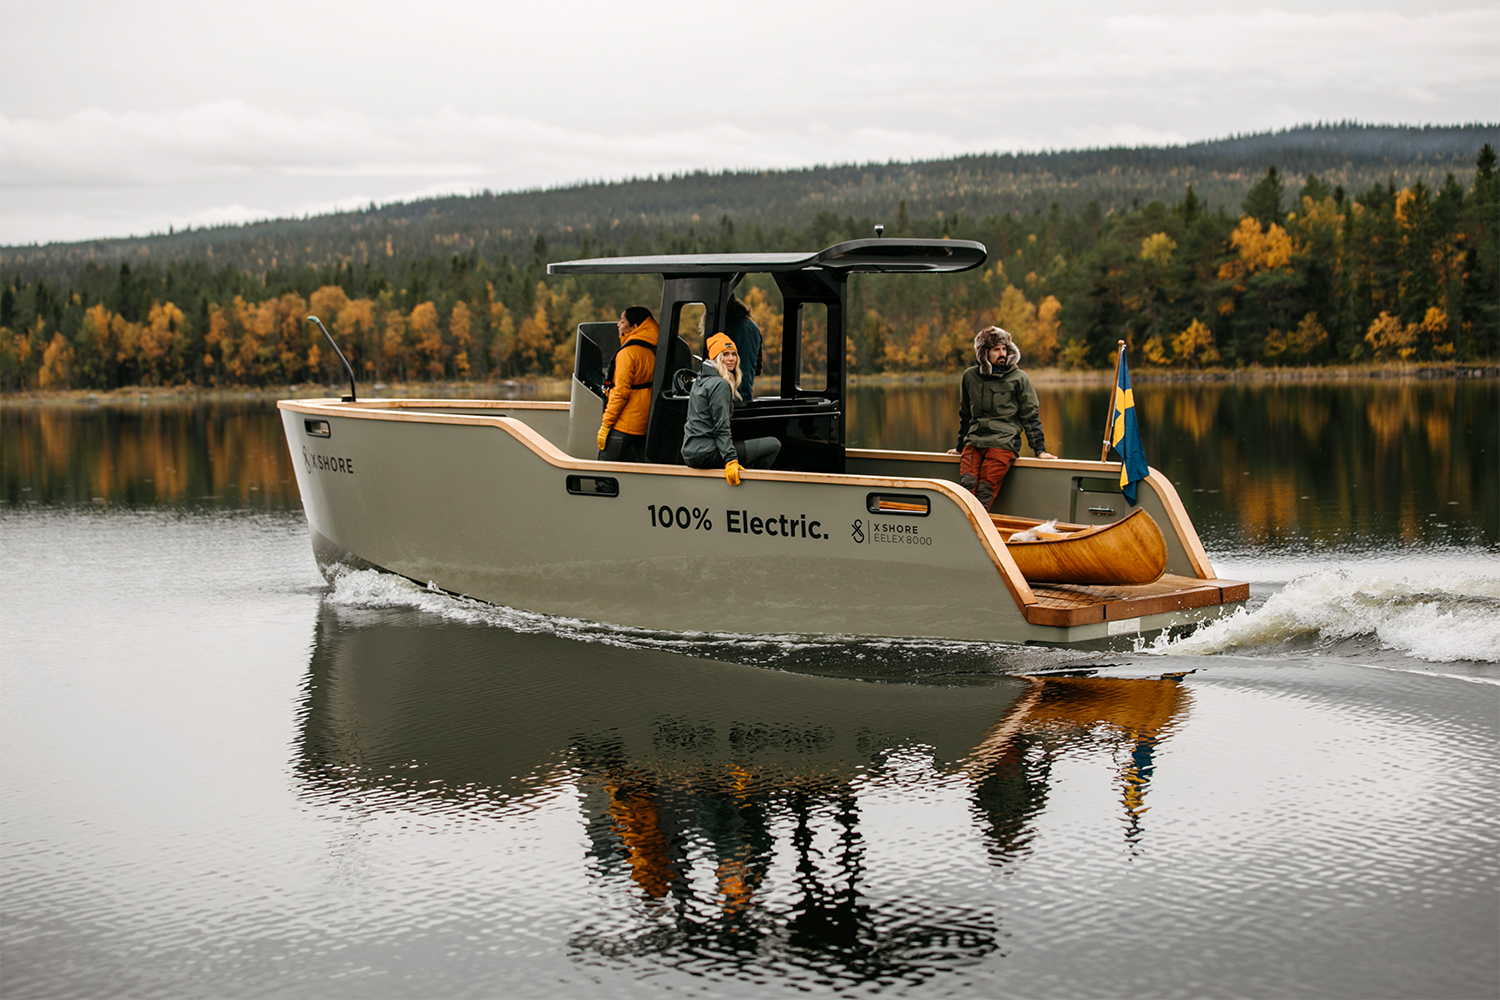 The 100% electric Eelex 8000 from X Shore slowly gliding through still water with fall foliage in the background. The Swedish electric boat builder hopes to be a leader in the industry.